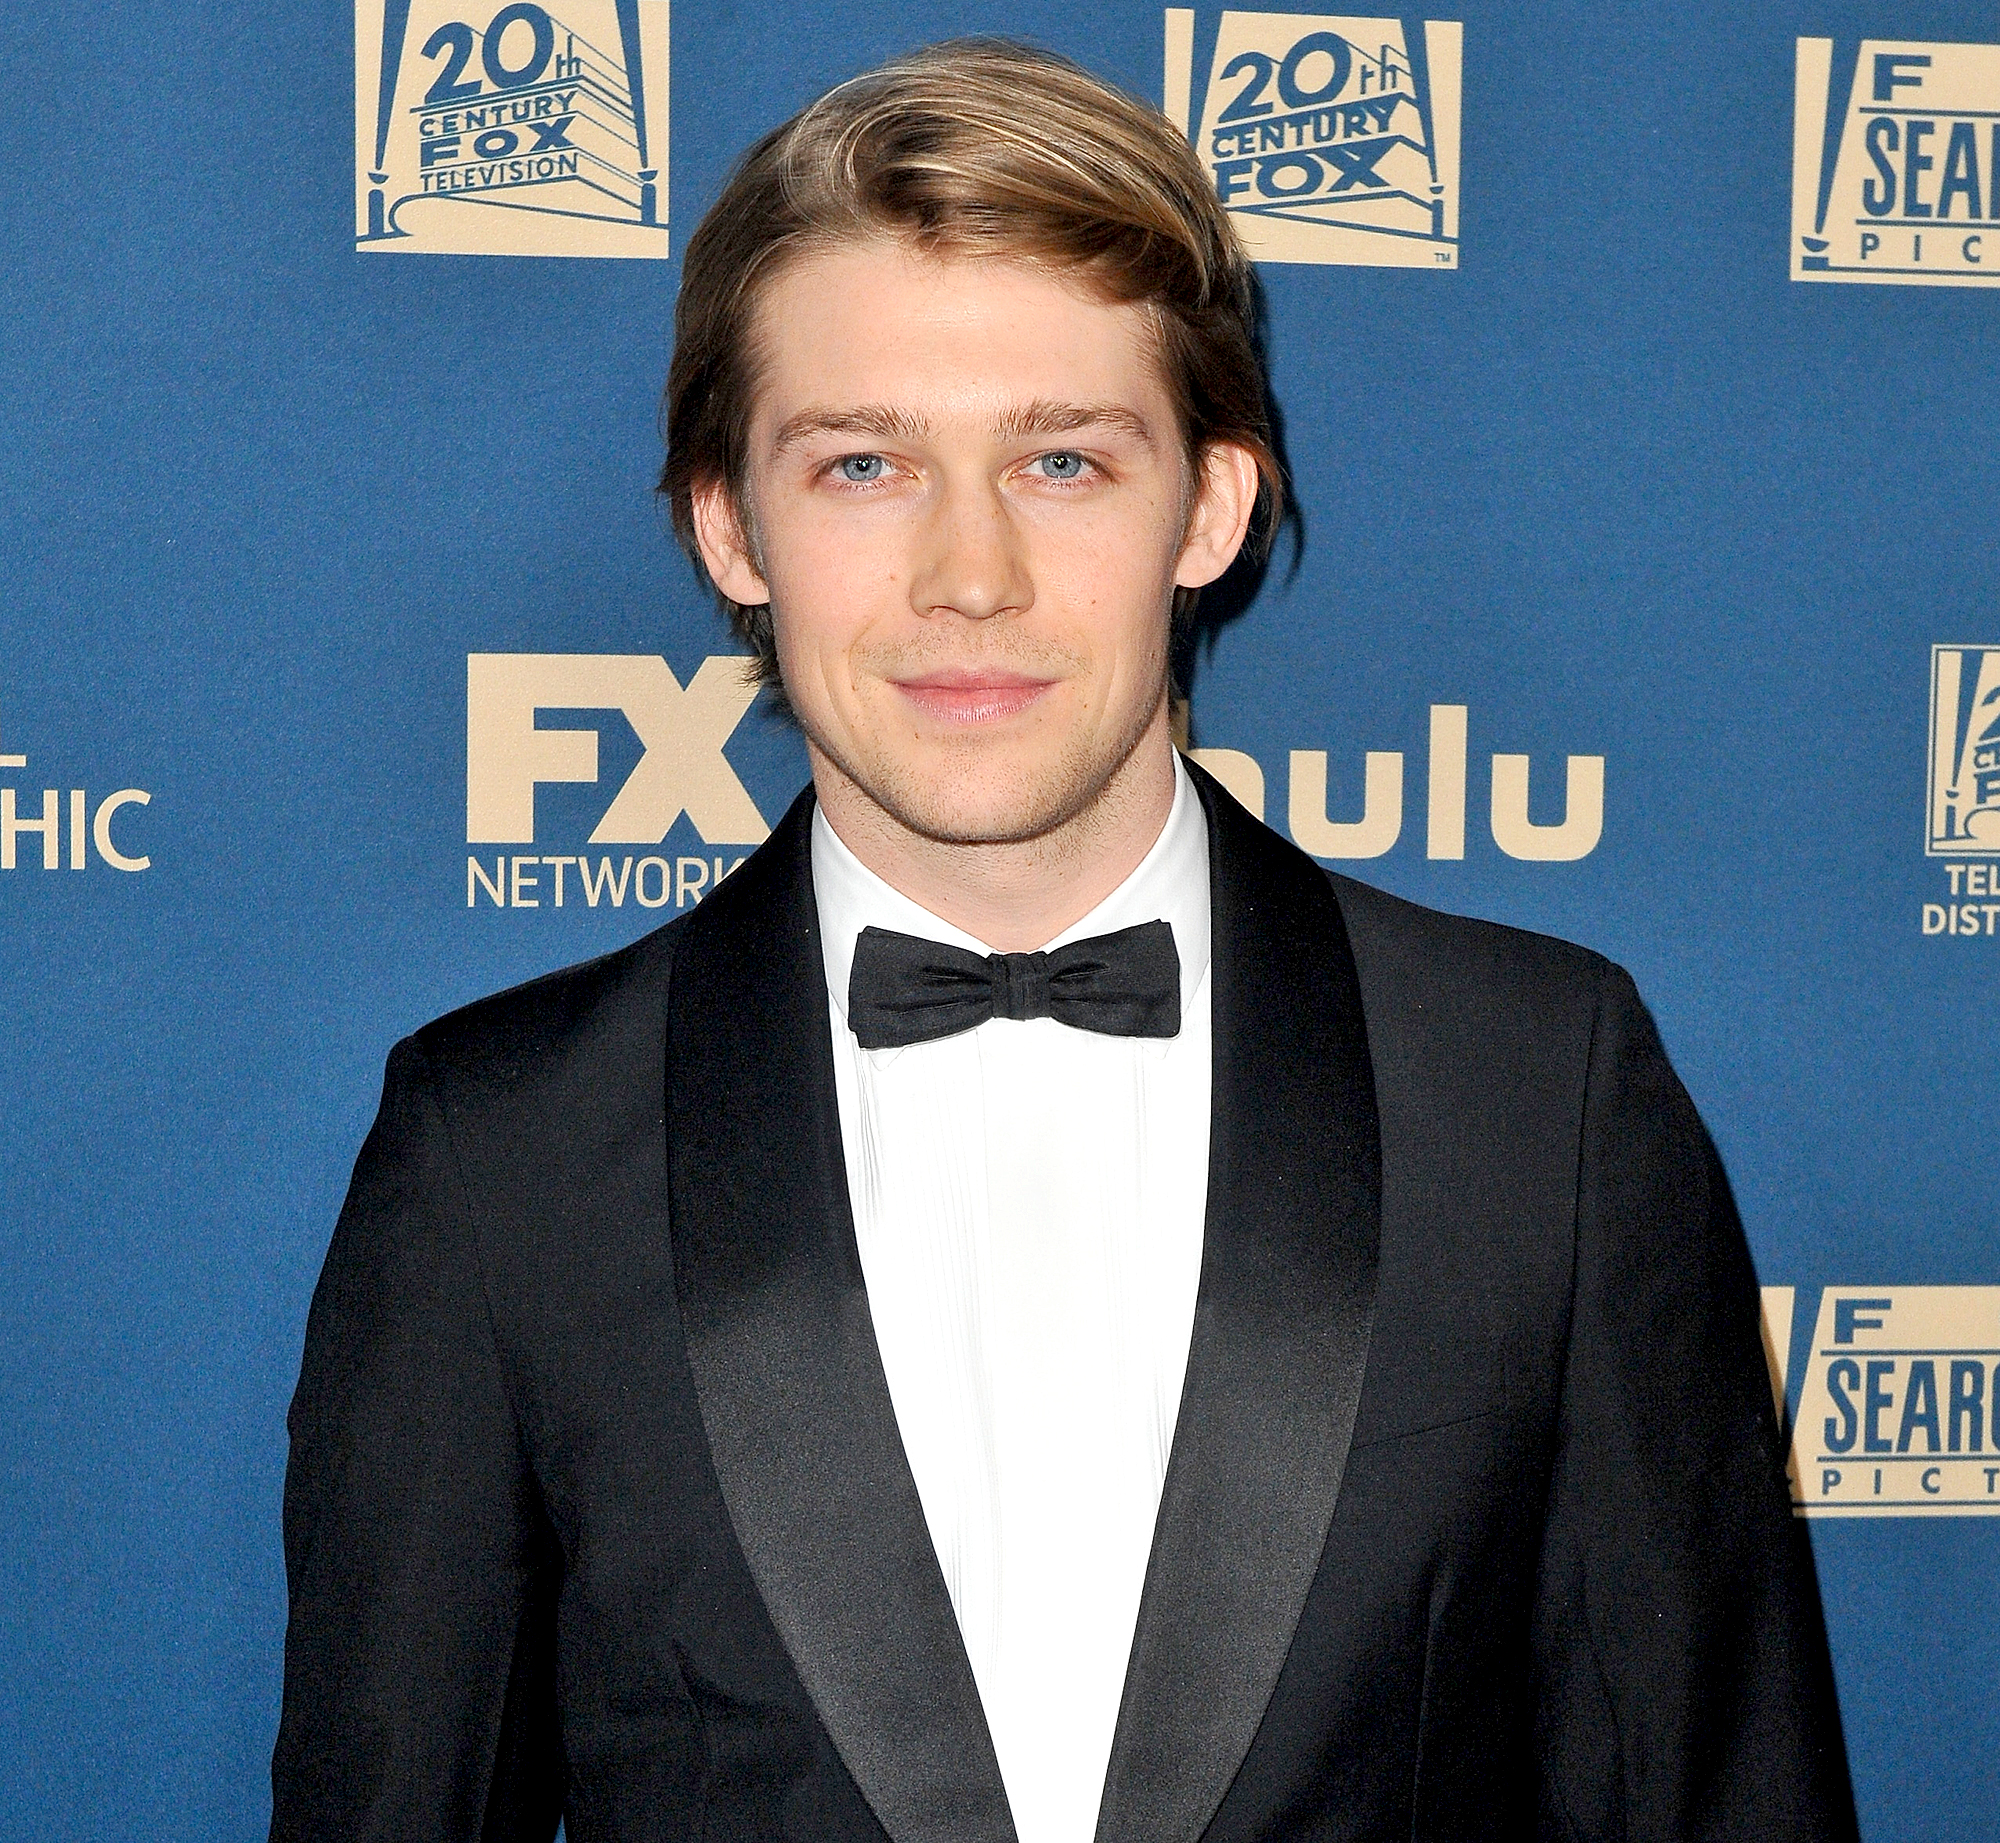 "Everything-Joe-Alwyn-Has-Said-About-taylor-swift - More than a year after Alwyn and Swift started dating, the Favourite actor spoke out about their relationship for the first time. ""I'm aware people want to know about that side of things,"" he said in the October 2018 issue of British Vogue ."